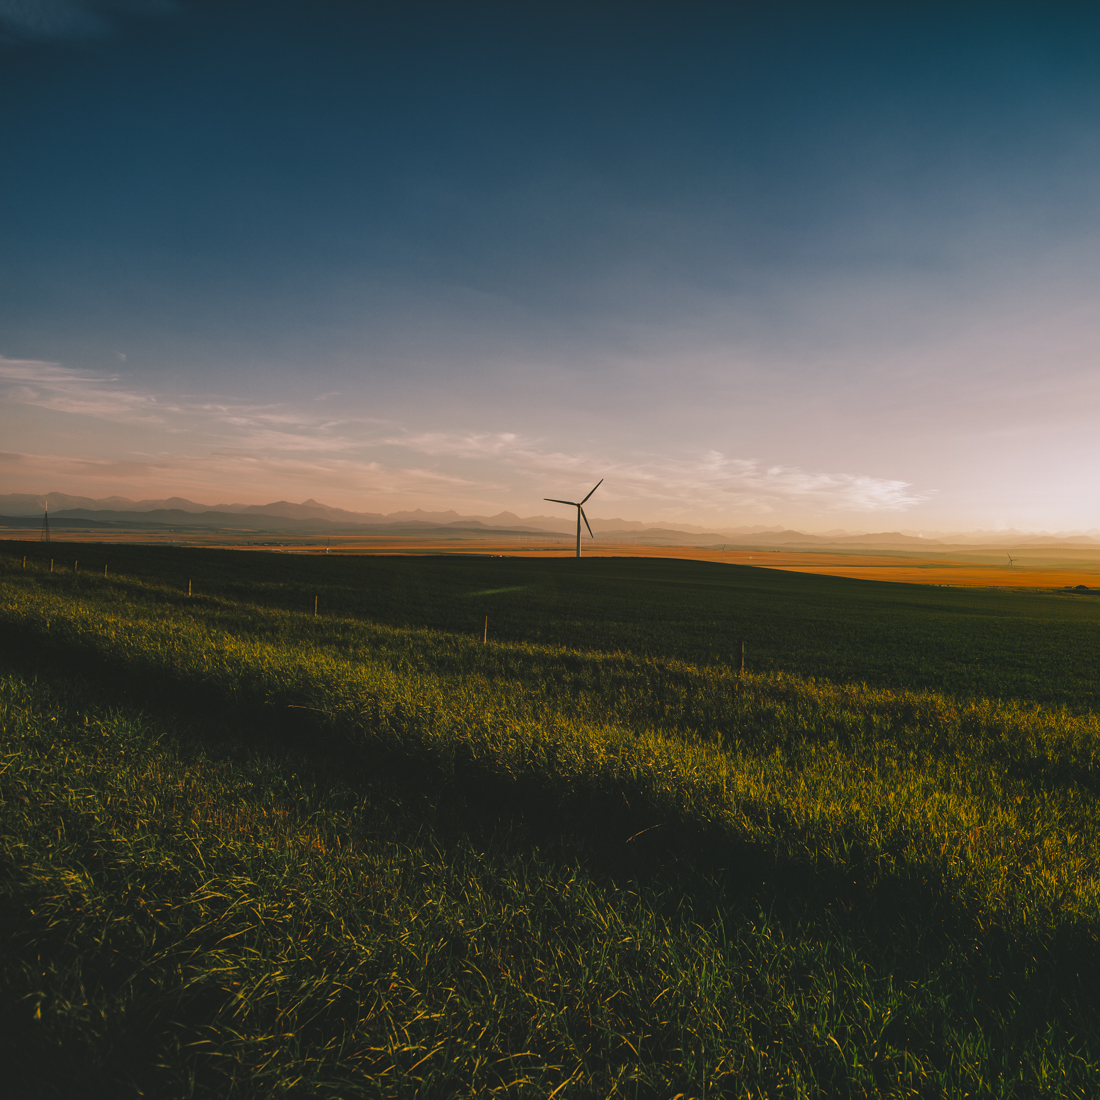 Wind turbine operates against a Canadian Rockies backdrop during a late summer sunset near Pincher Creek. Alberta landscape. Copy space horizontal.